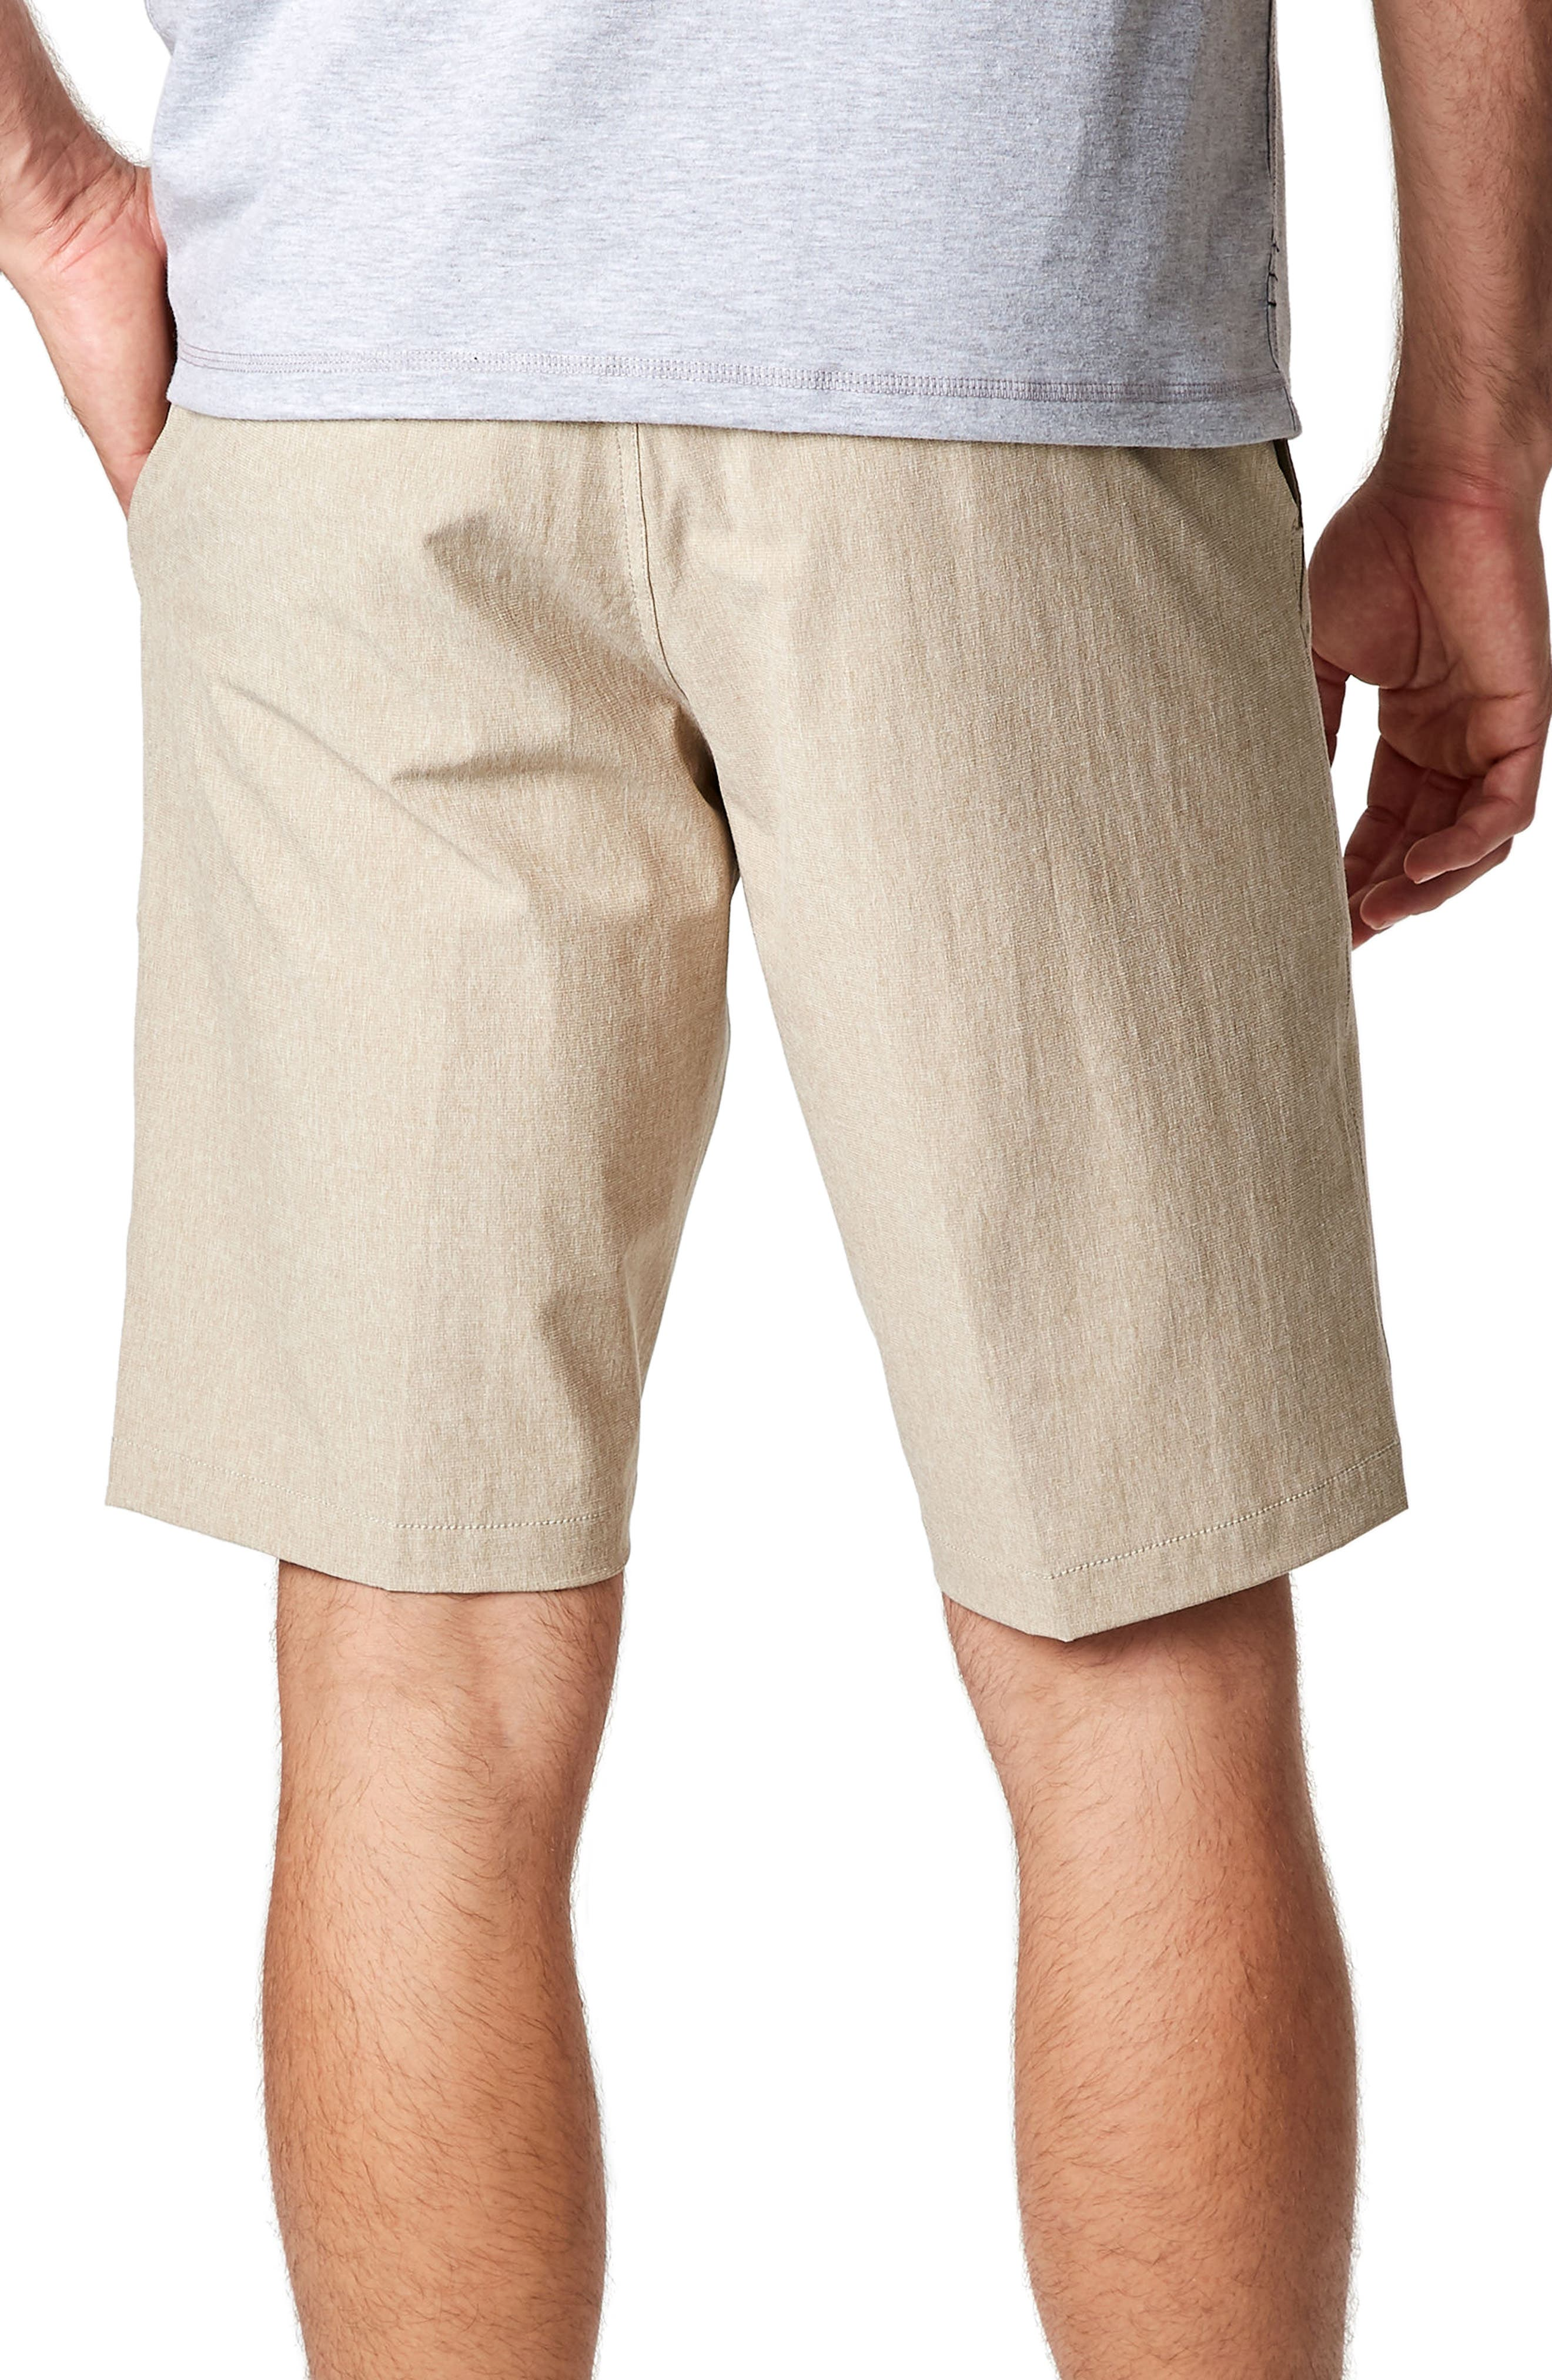 Adrenaline Stretch Shorts,                             Alternate thumbnail 2, color,                             Khaki